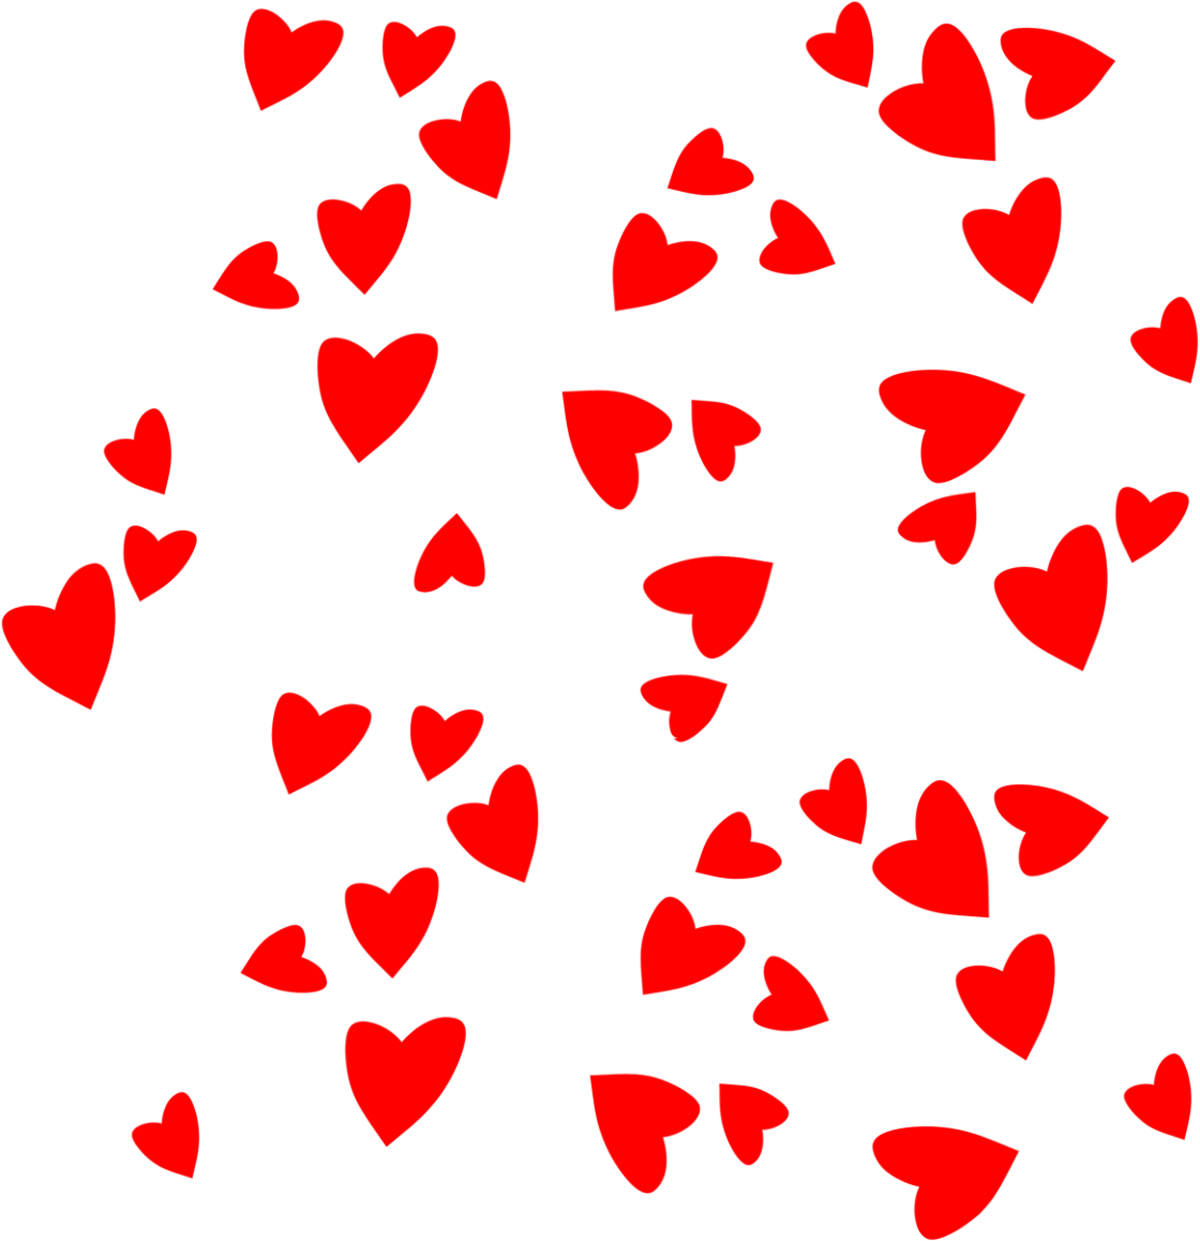 Animated Valentines Day Png Transparent Animated Valentines Daypng